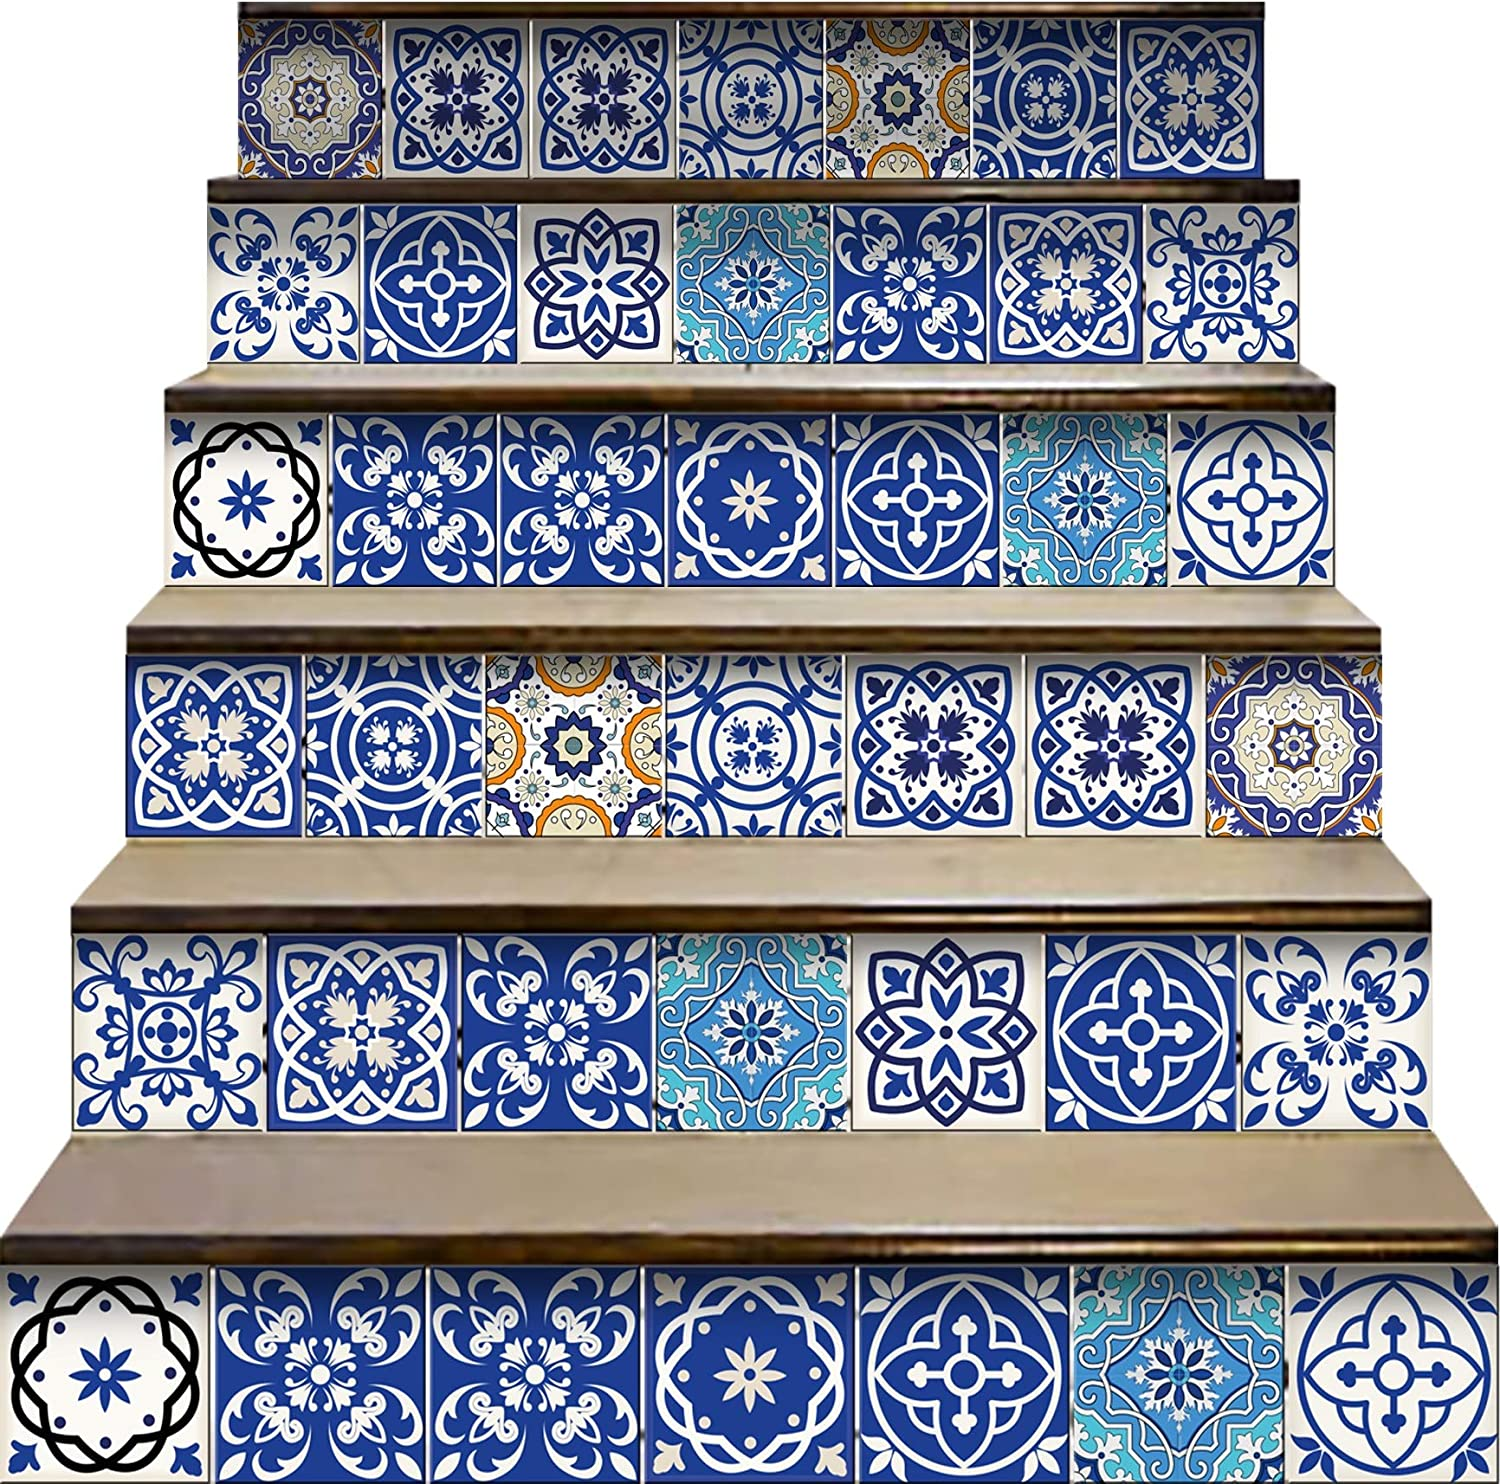 Mi Alma Peel and Stick Tile Backsplash Stair Riser Decals DIY Tile Decals Mexican Talavera Home Decor Staircase Decal Tile Stickers Decals 7''W x 7''L (Set of 24) (Greek Tile Design)